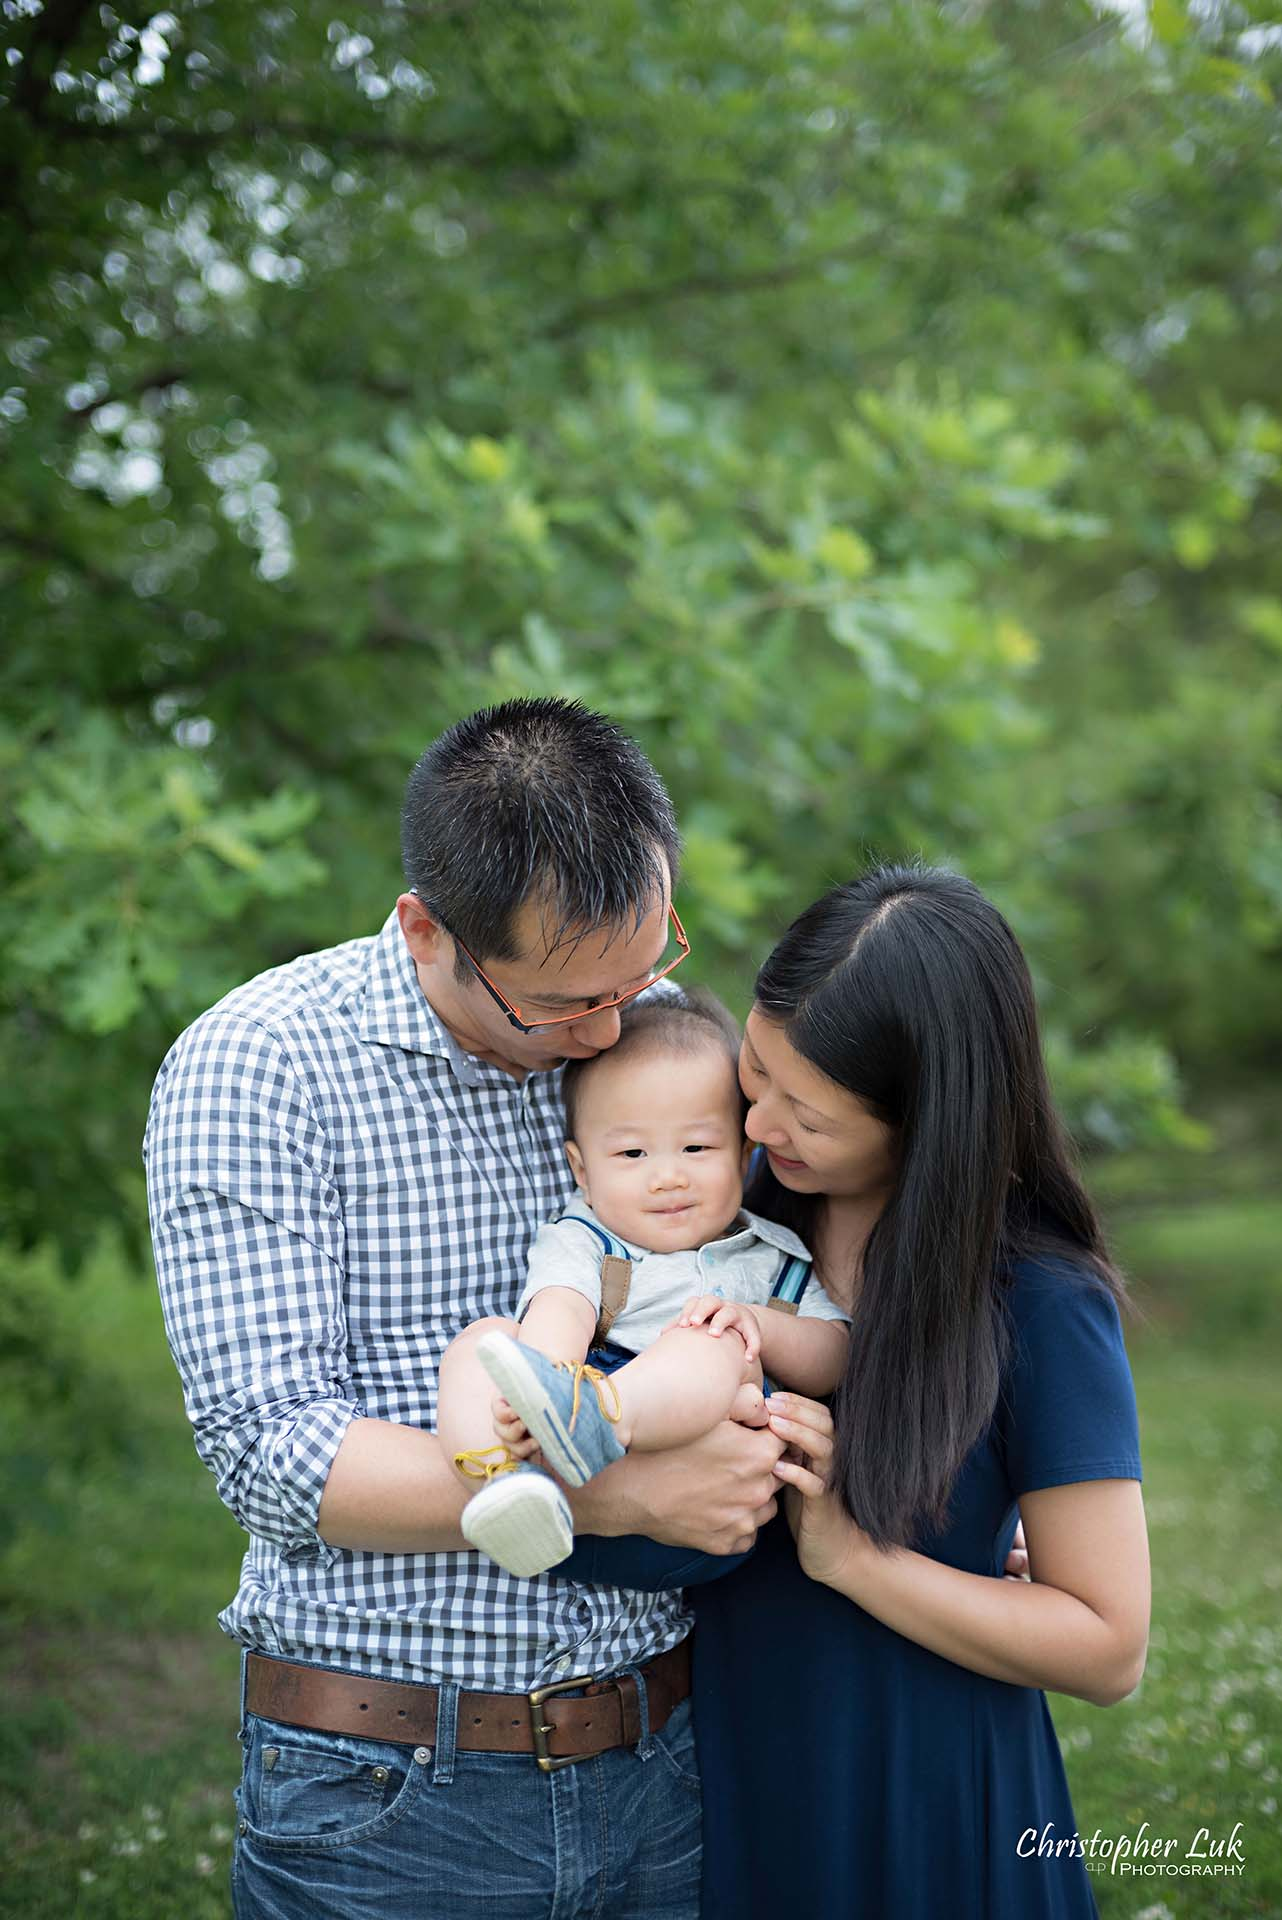 Christopher Luk Family Baby Wedding Photographer Richmond Hill Markham Toronto - Candid Natural Photojournalistic Mother Father Parents Baby Kiss Cute Adorable